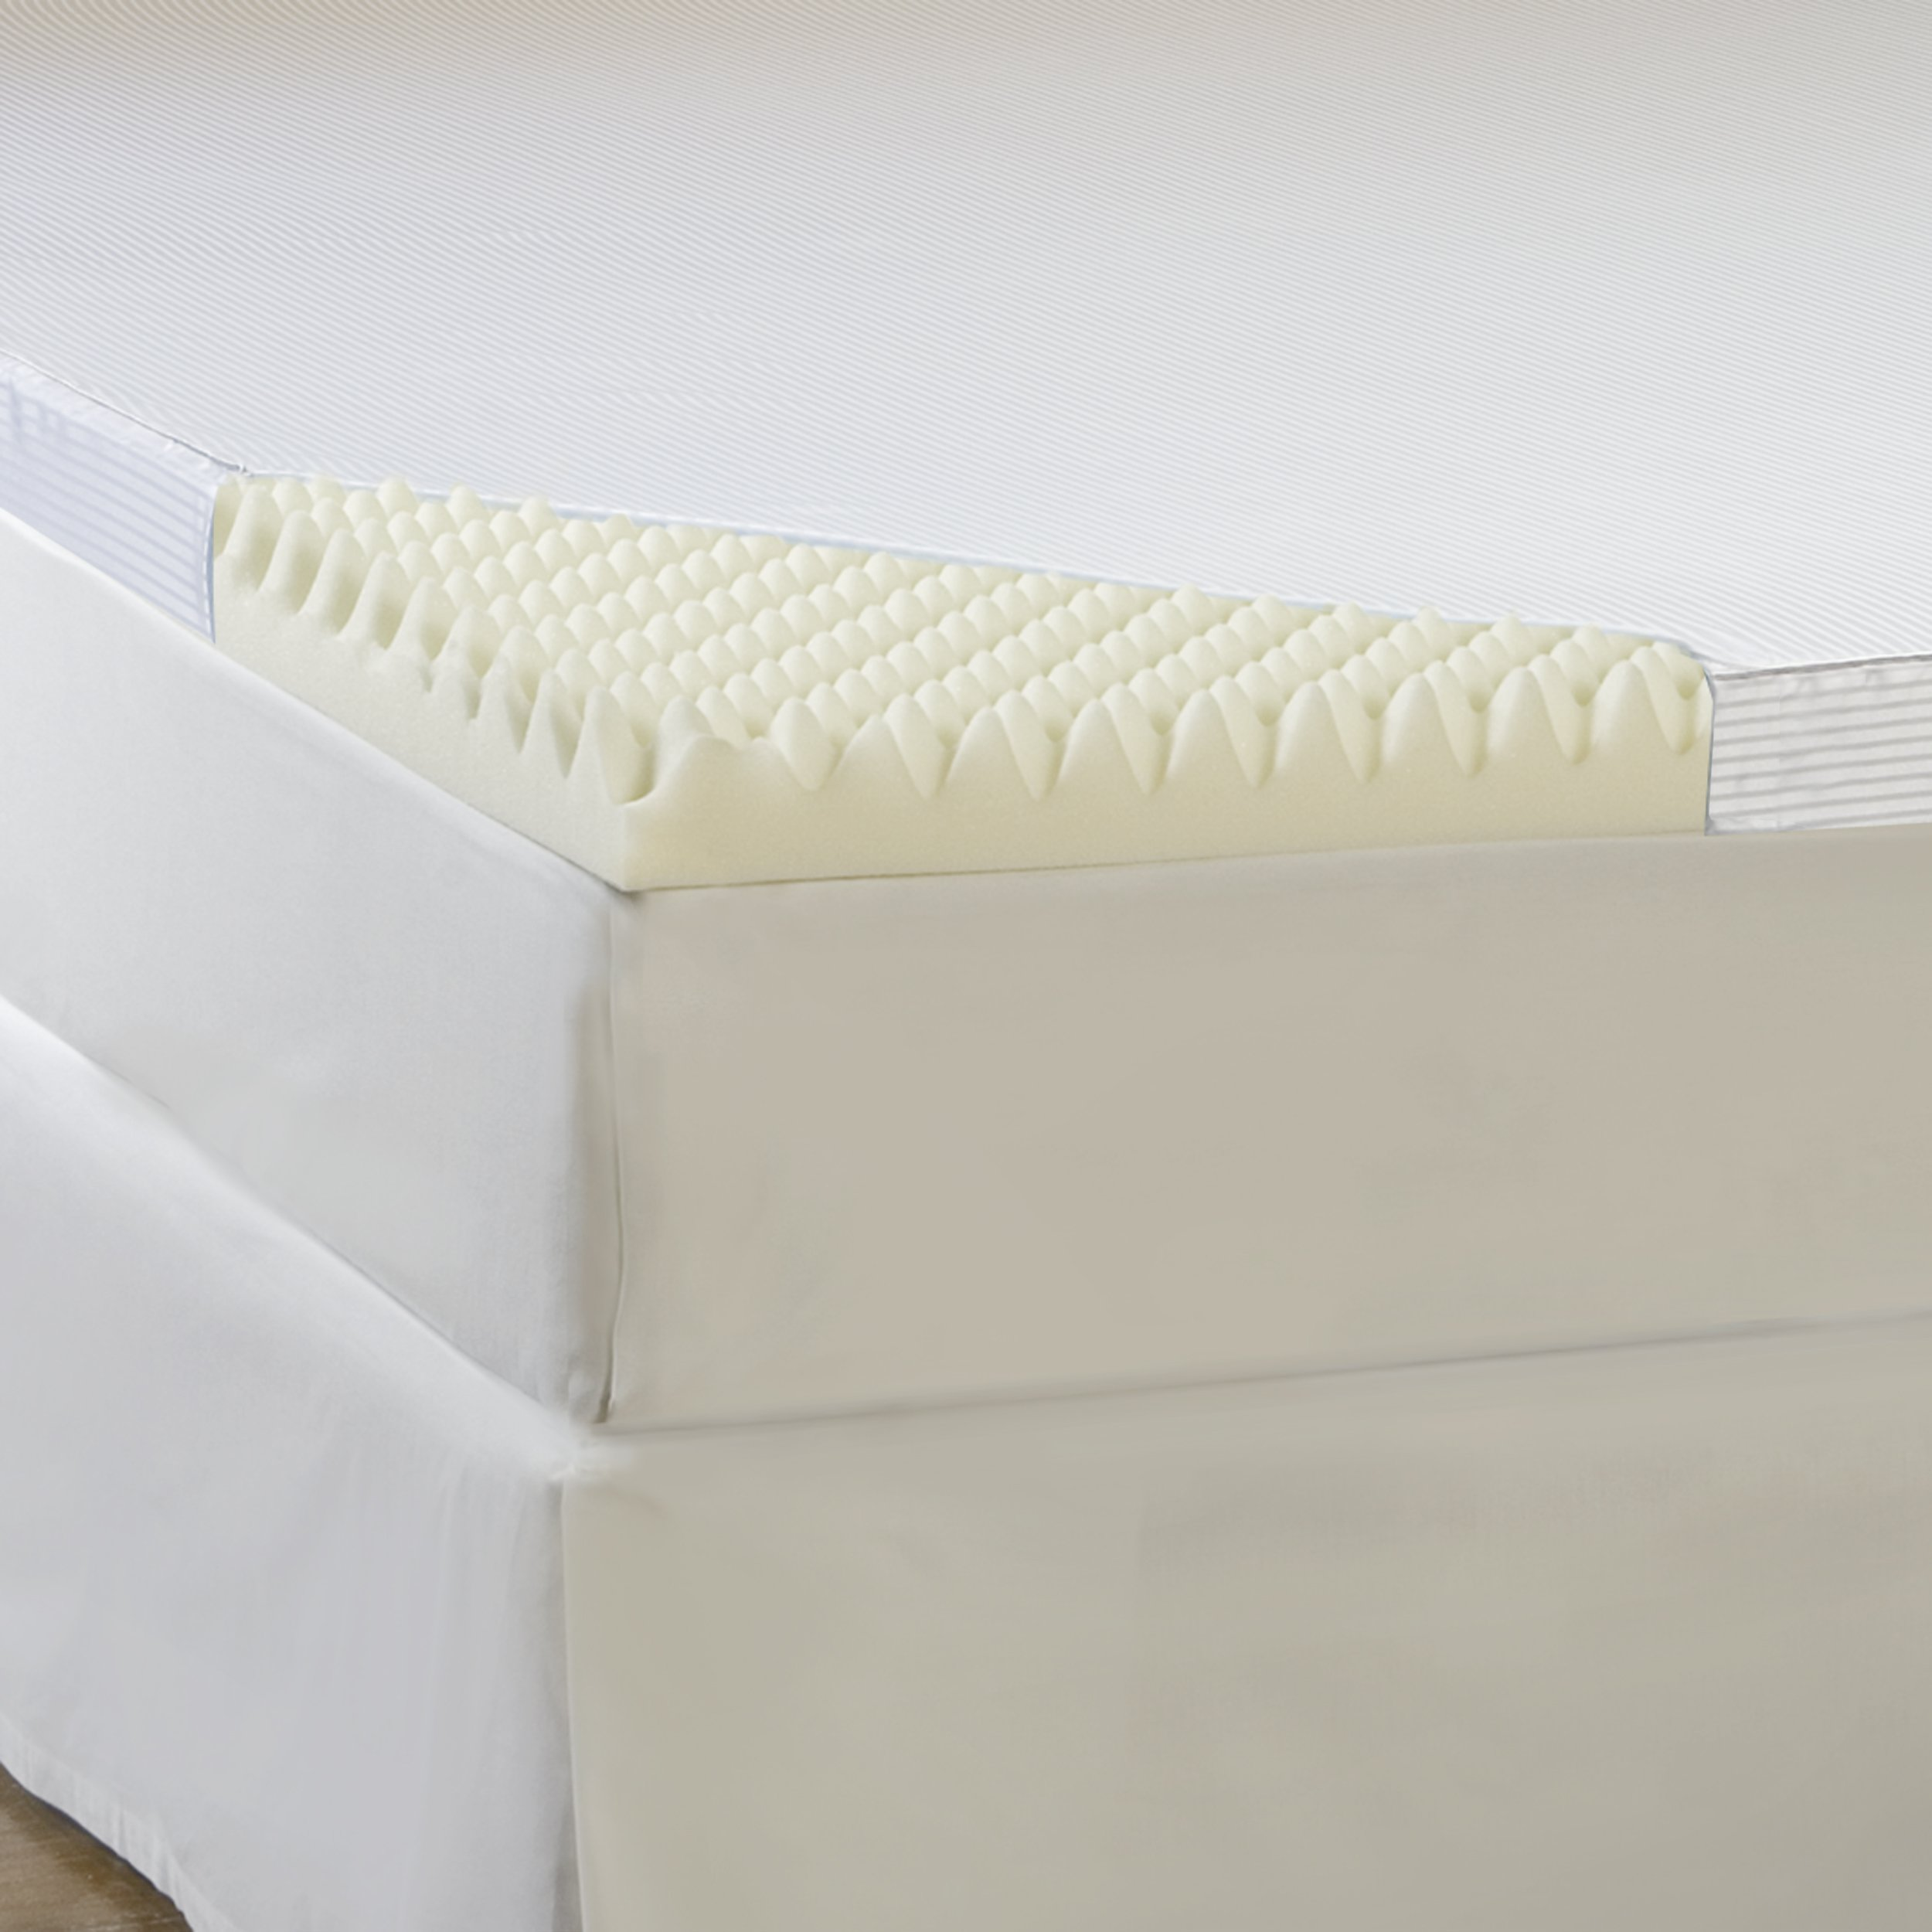 Hotel Comfort 4-Inch Comfort Loft Memory Foam Topper with Poly Silk Cover, Full